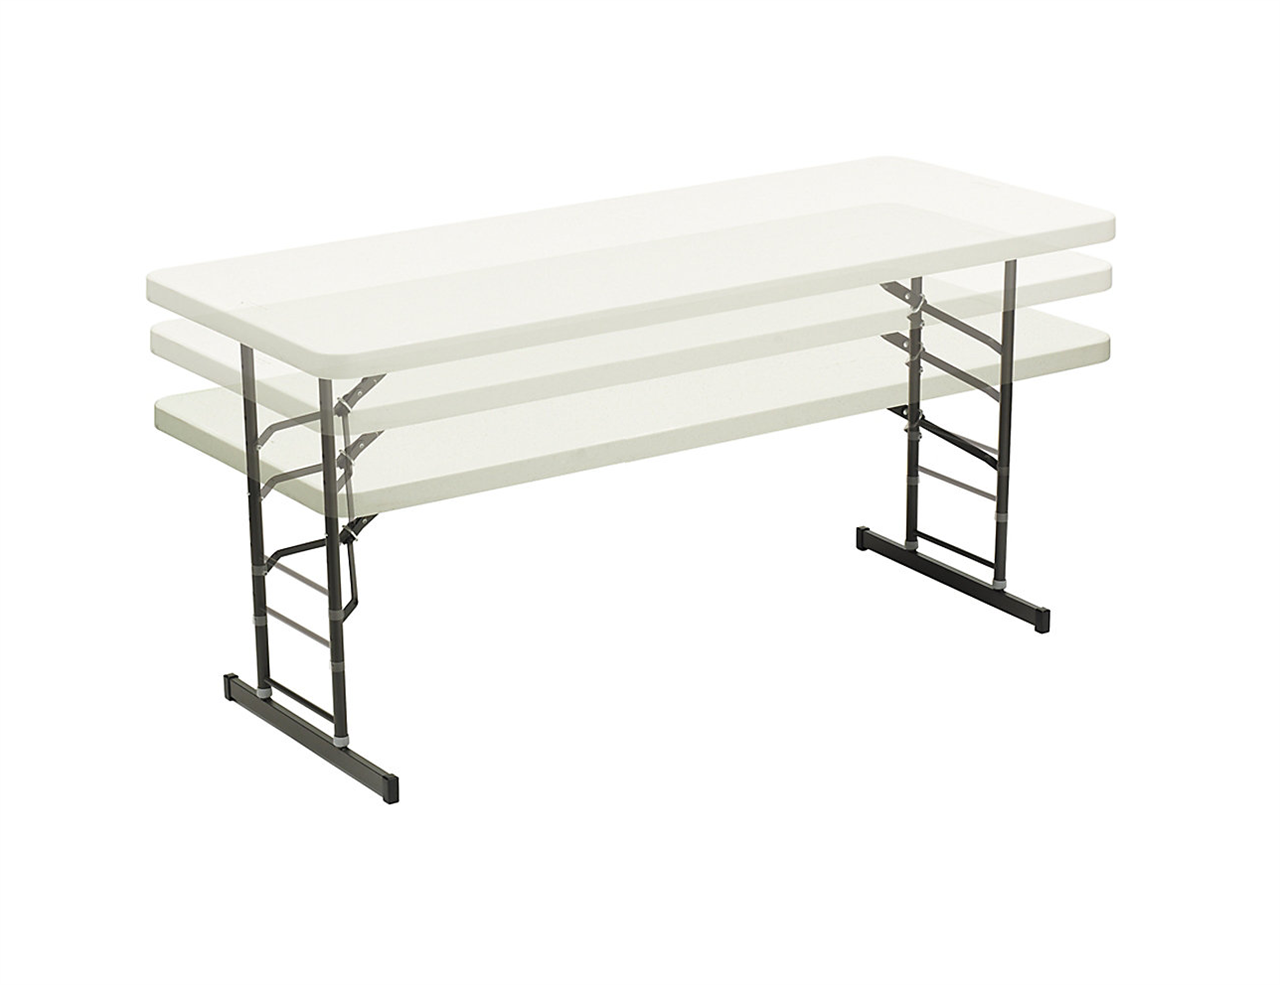 20 Folding Table Office Depot Home Furniture Images Check More At Http